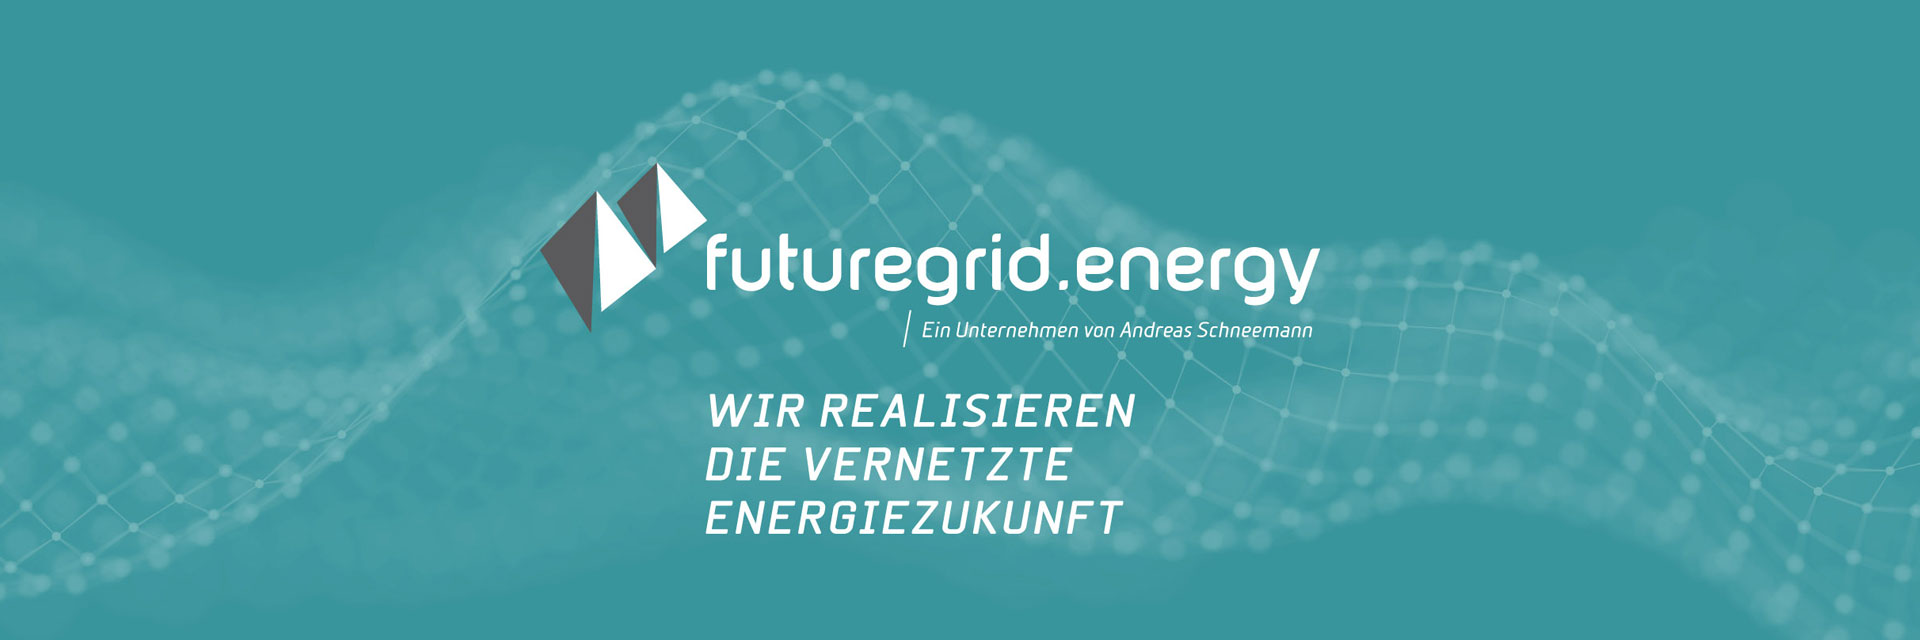 futuregrid.energy